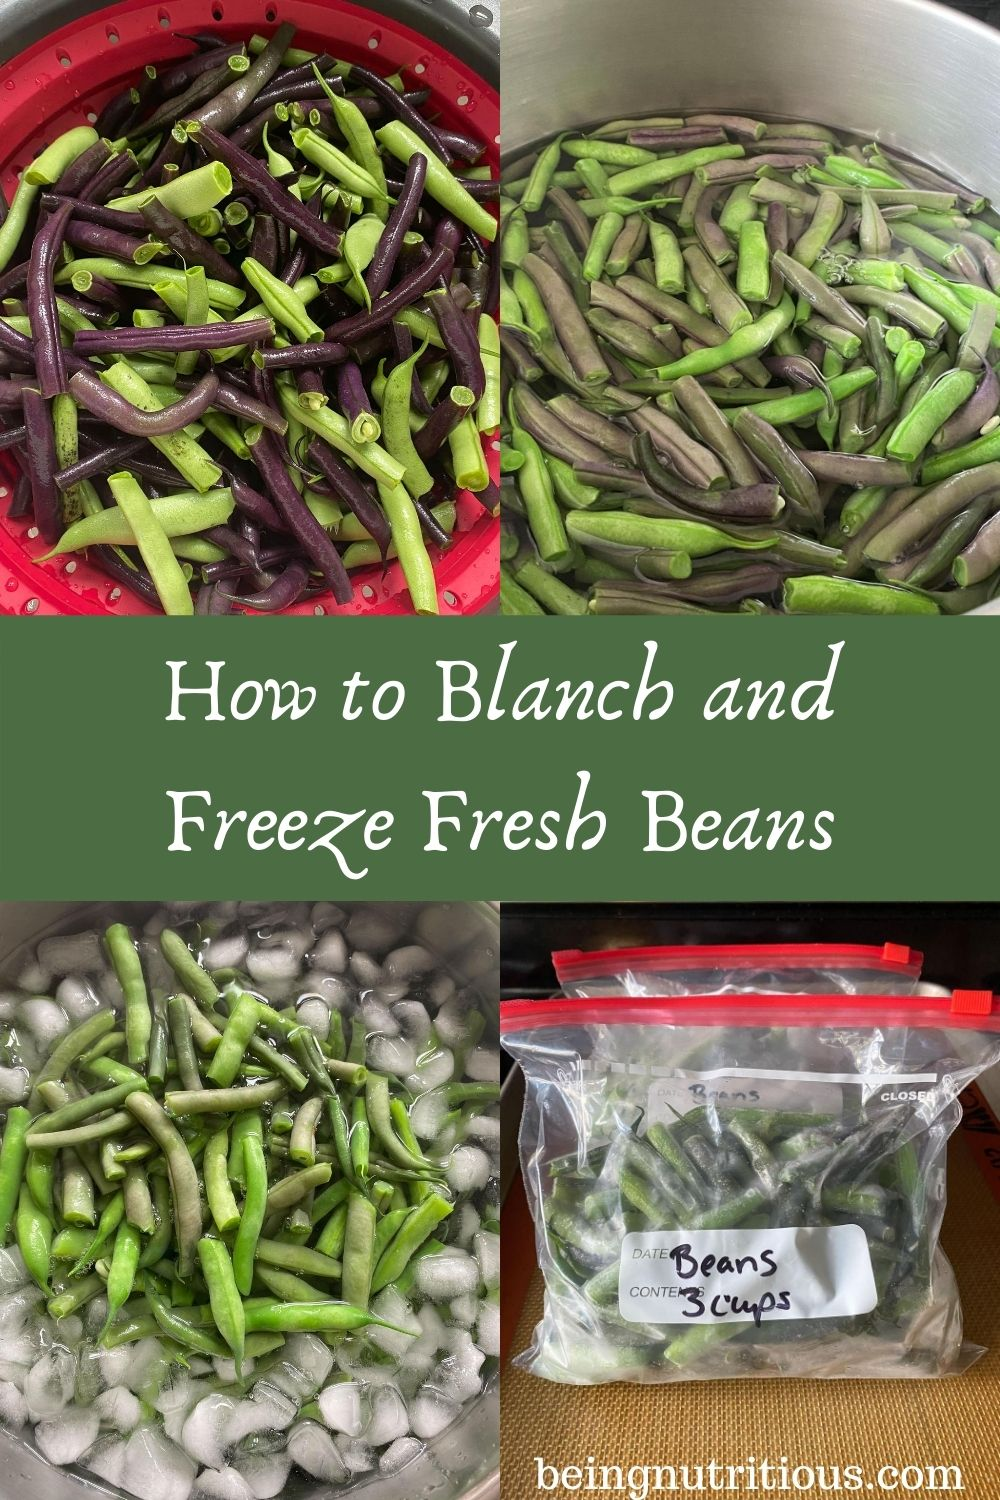 4 images: first is fresh beans, second is beans in boiling water, 3rd is blanched beans in ice bath, and 4th is frozen beans in zipper bags. Text overlay in green rectangle: How to Blanch and Freeze Fresh Beans.